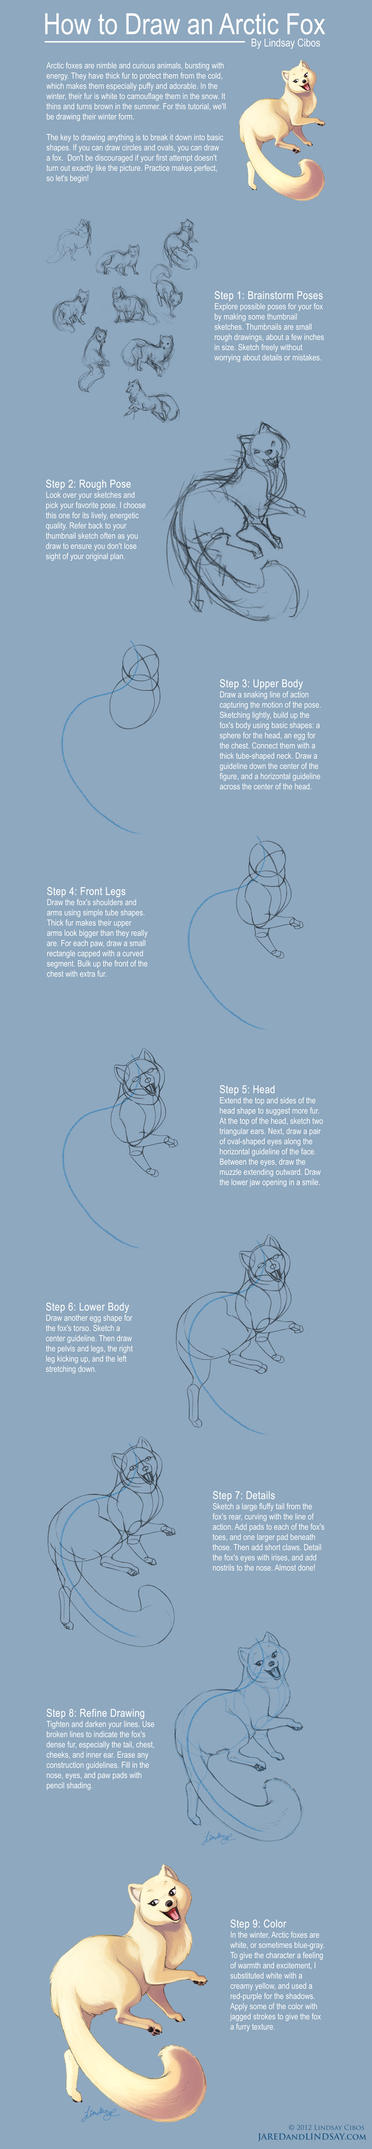 How to Draw an Arctic Fox by LCibos